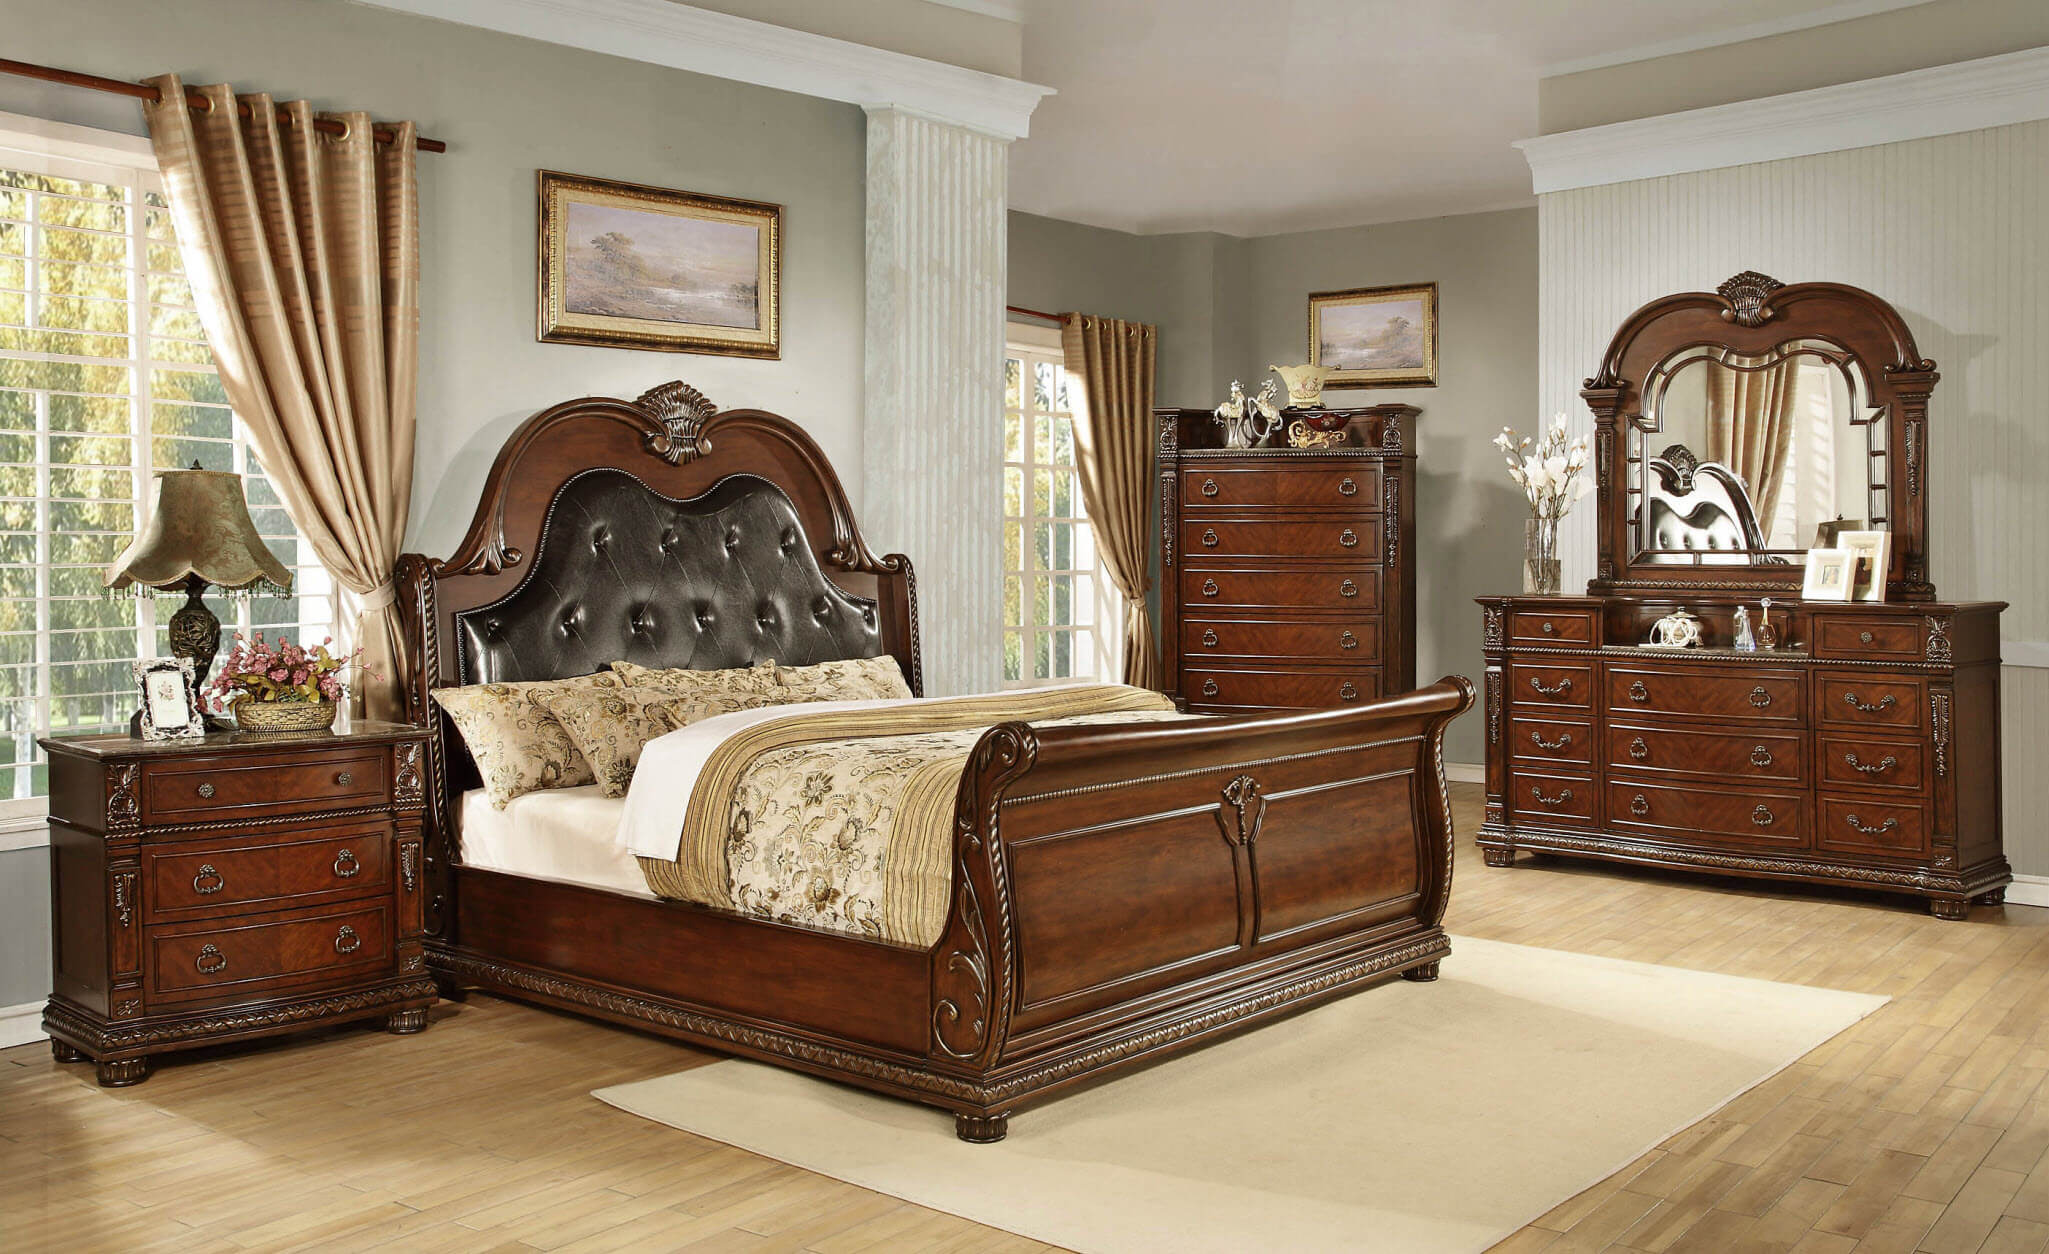 Bedroom Furniture Sets. Palace Marble Top Bedroom Set   Bedroom Furniture Sets